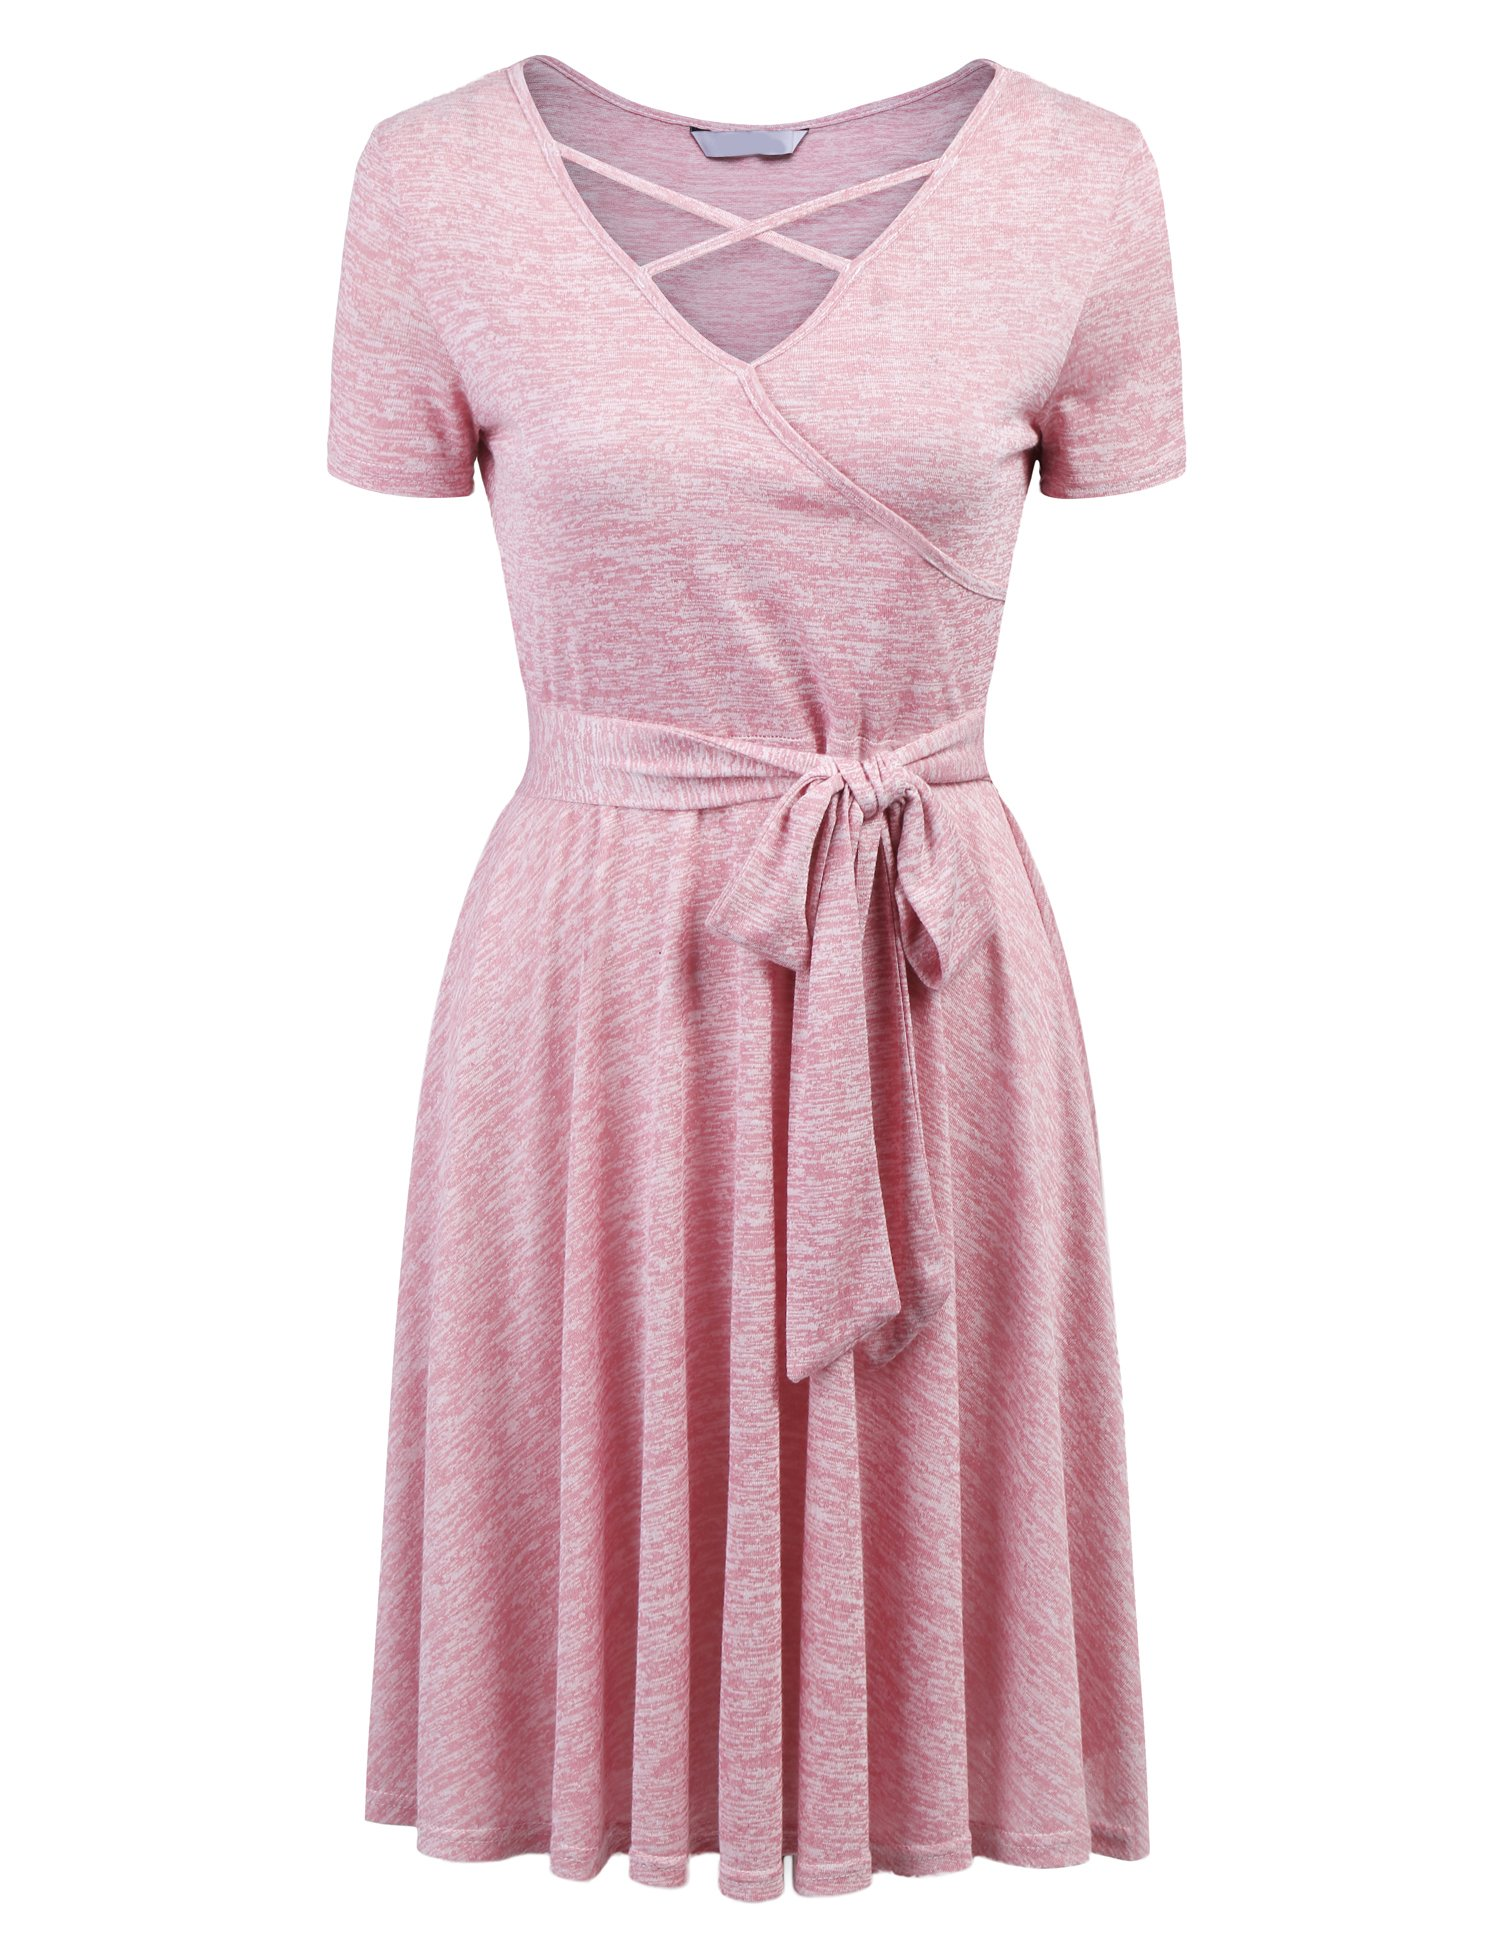 Showyoo Cotton Petite Dresses Casual Flowy Bow Tie Dress For Women Misty Rose M